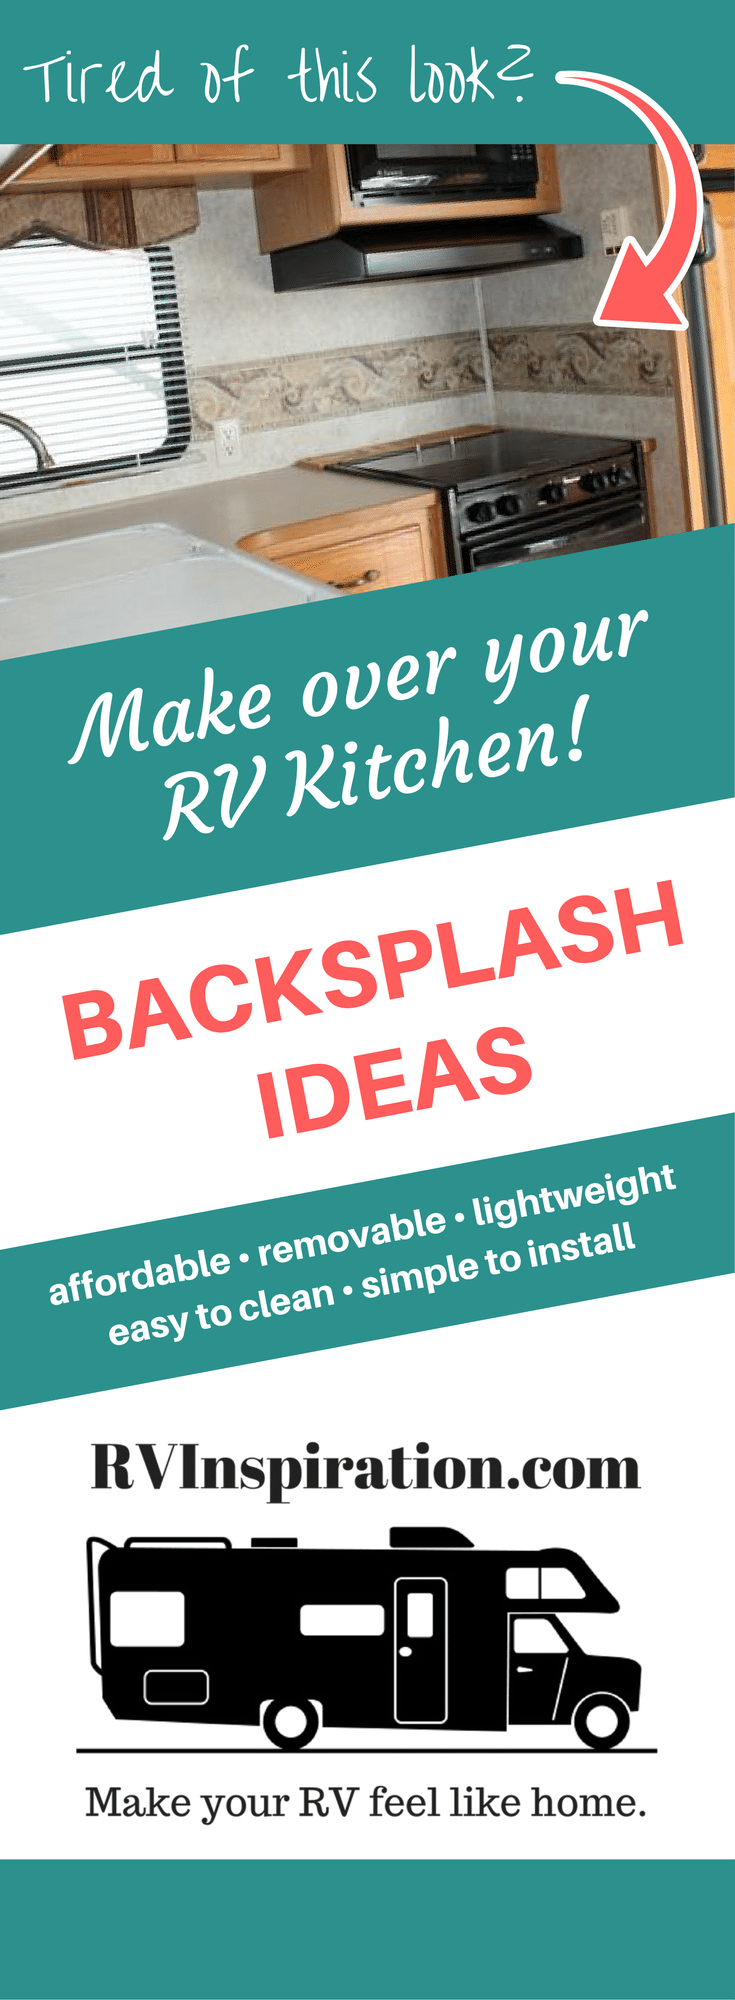 10 Beautiful (and Cheap!) DIY Backsplash Ideas | RV Inspiration